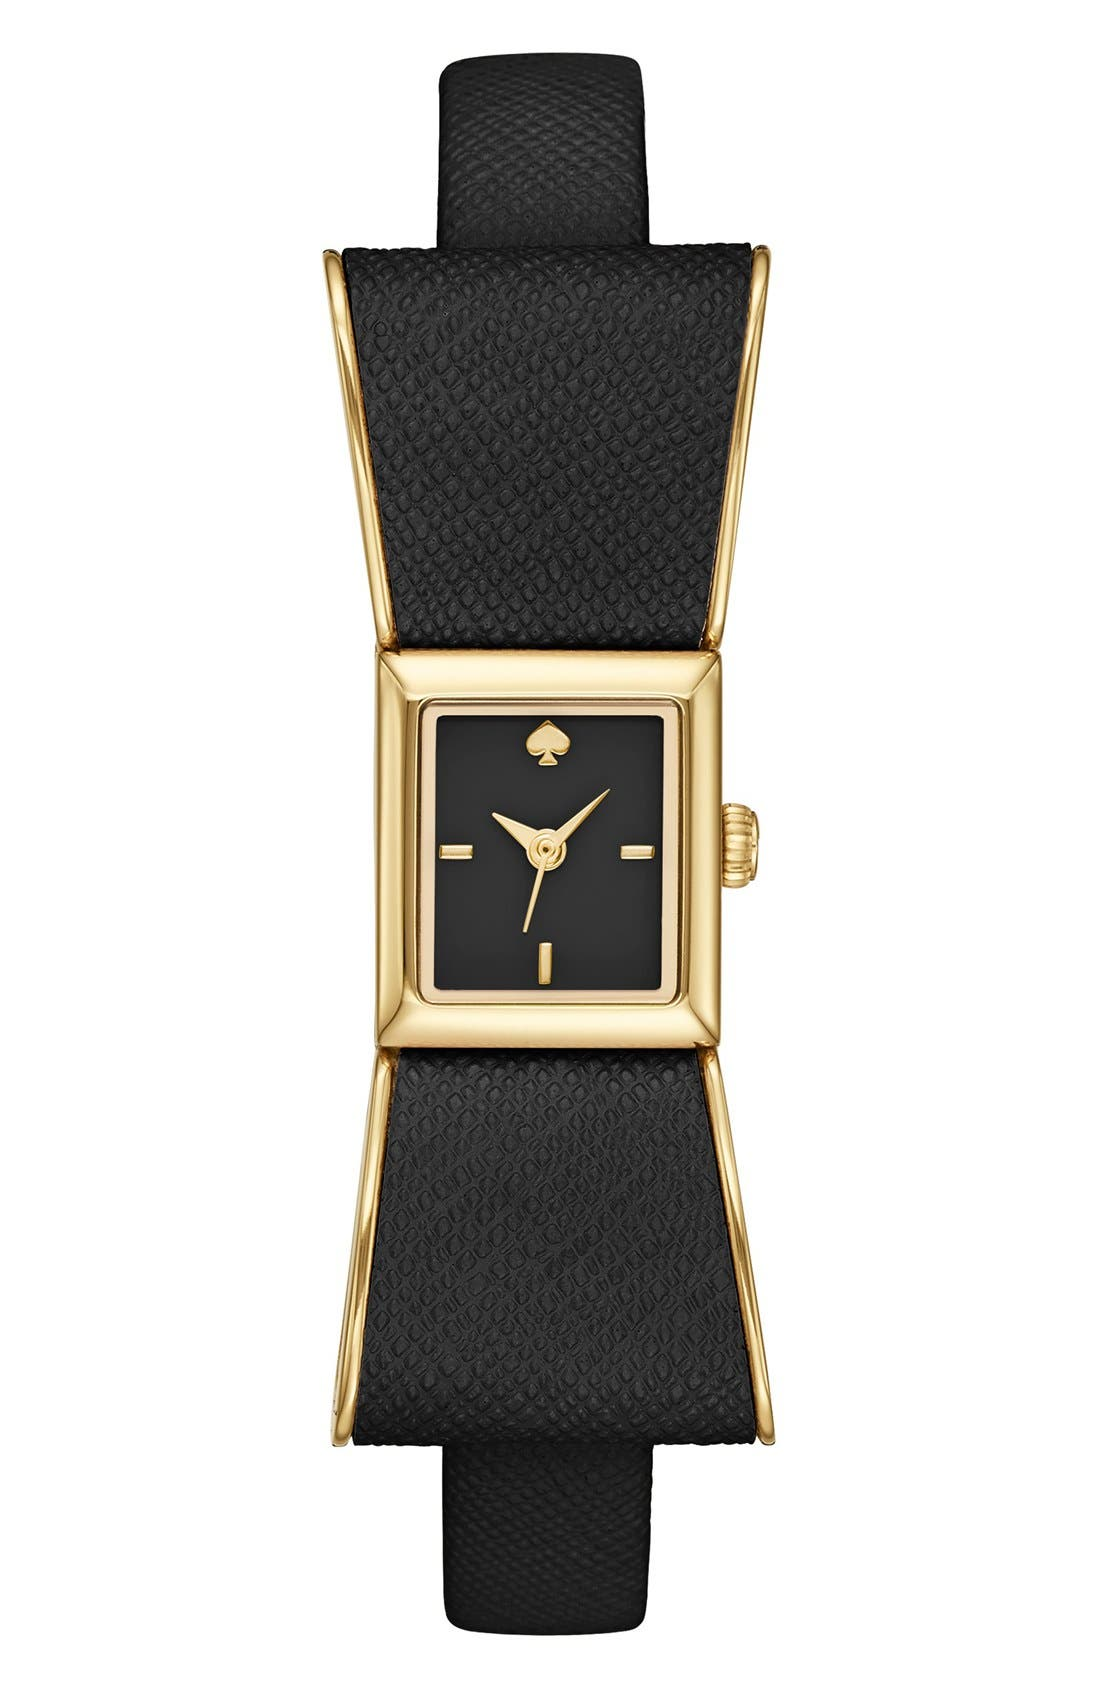 KATE SPADE NEW YORK kenmare bow case watch, 20mm